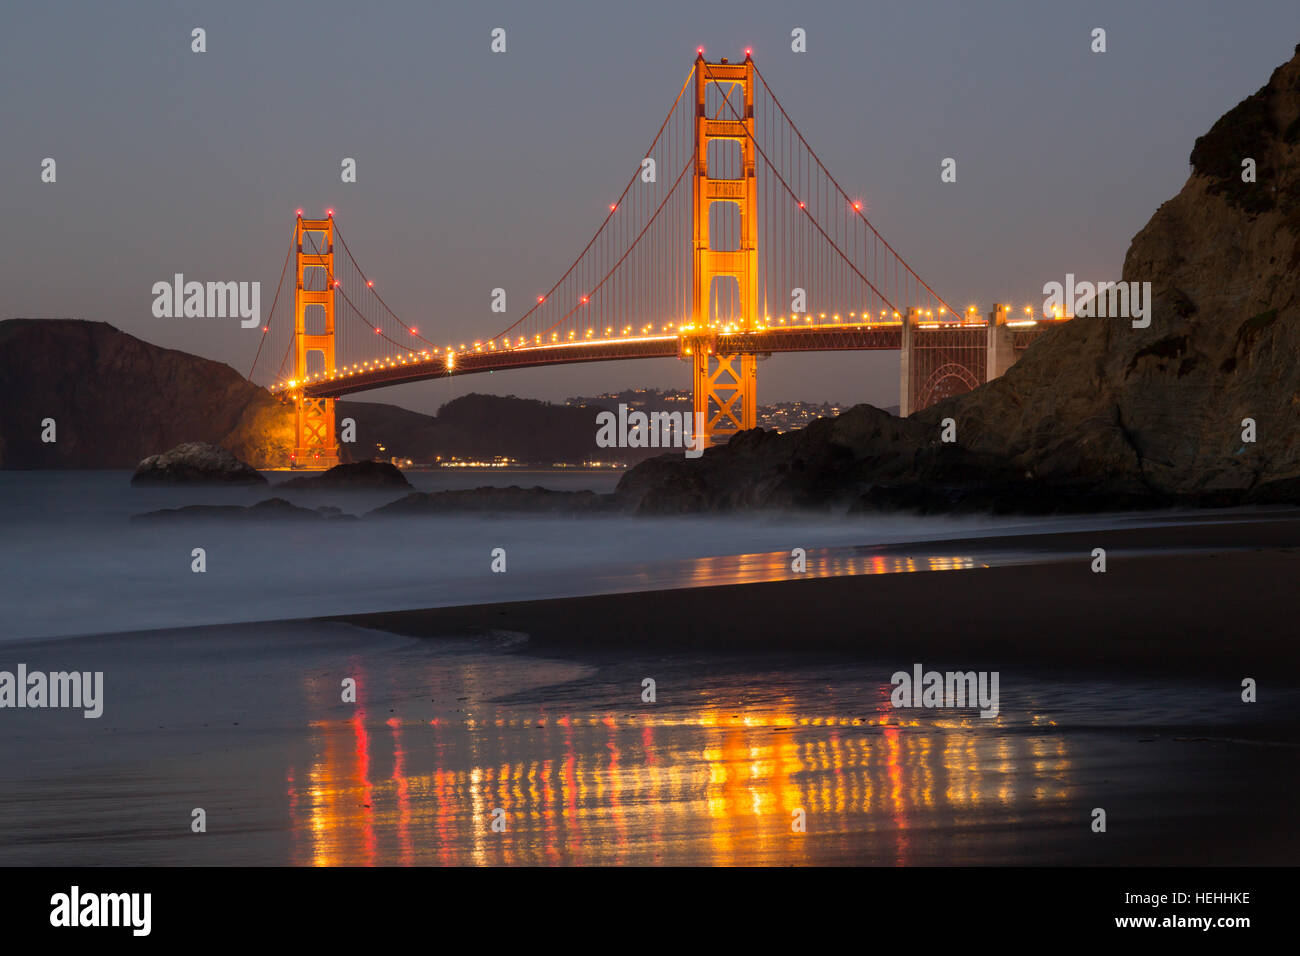 The Golden Gate Bridge and Baker Beach Reflections - Stock Image